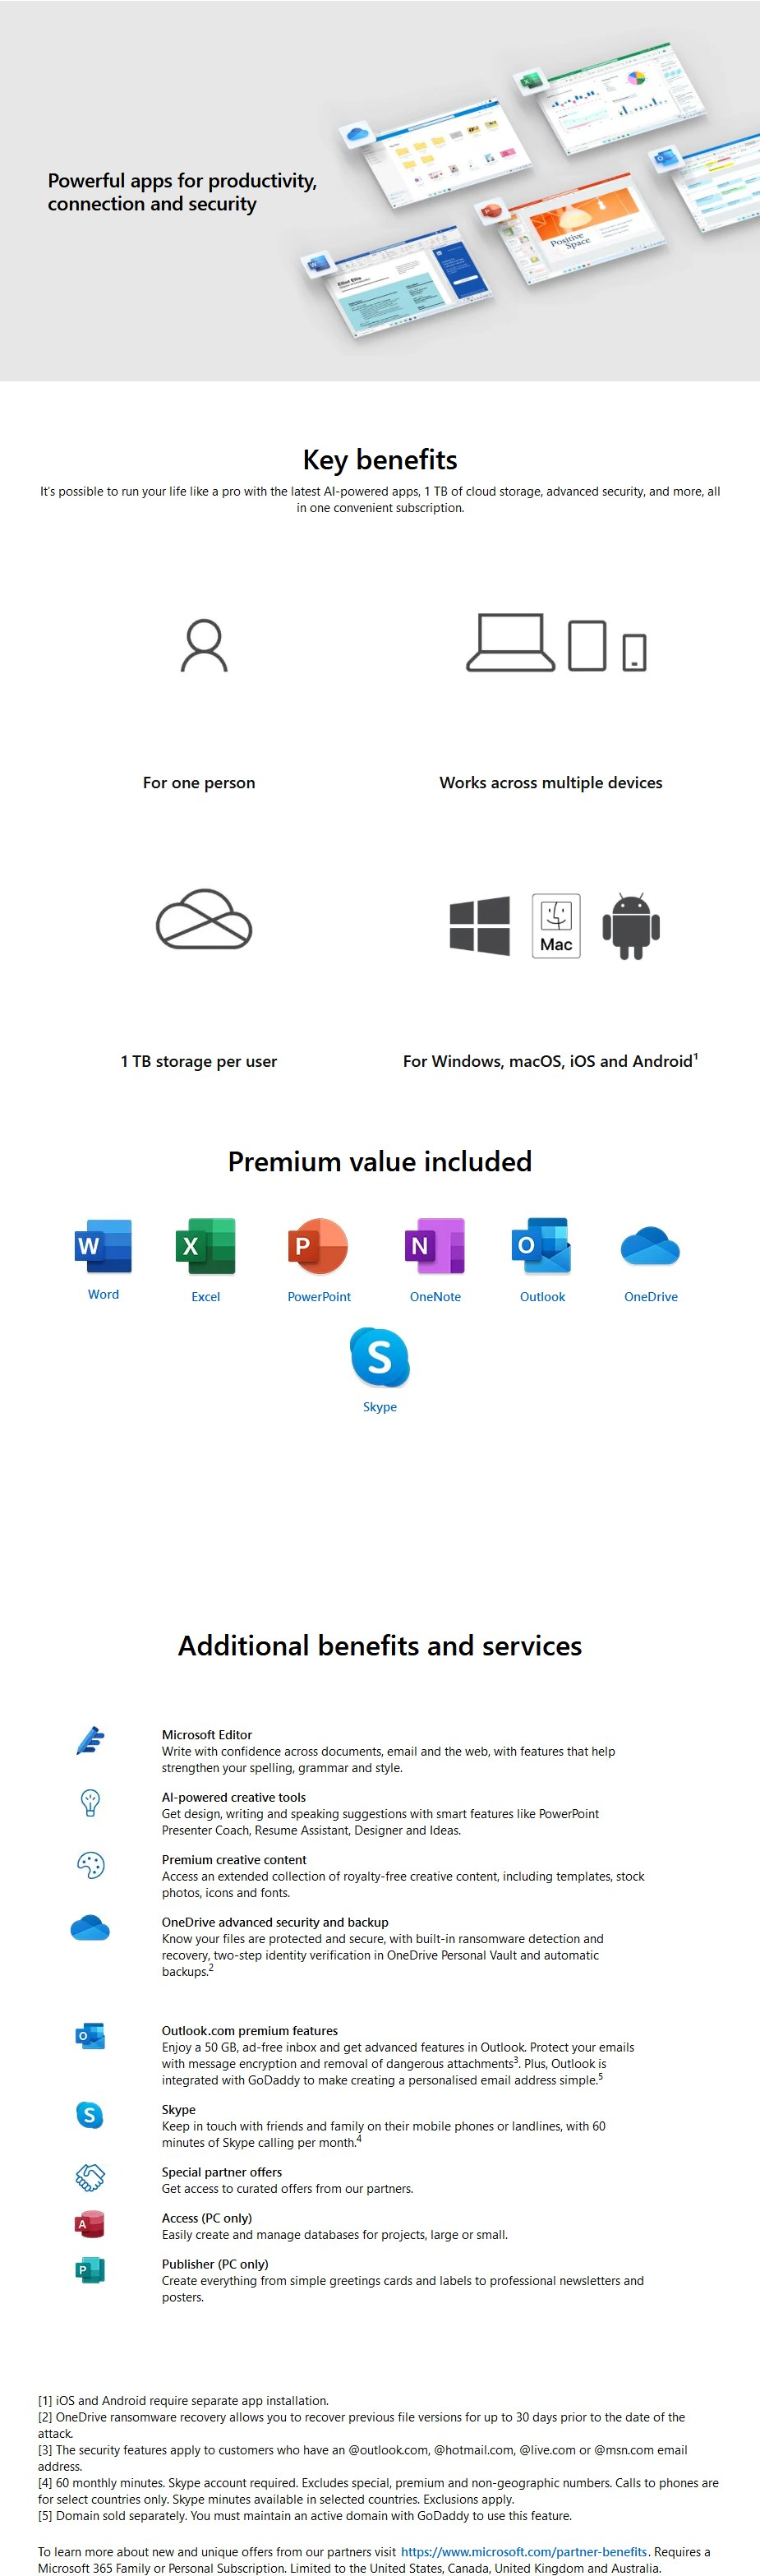 Microsoft Office 365 Personal 1 Year Subscription - Medialess Retail - Desktop Overview 1